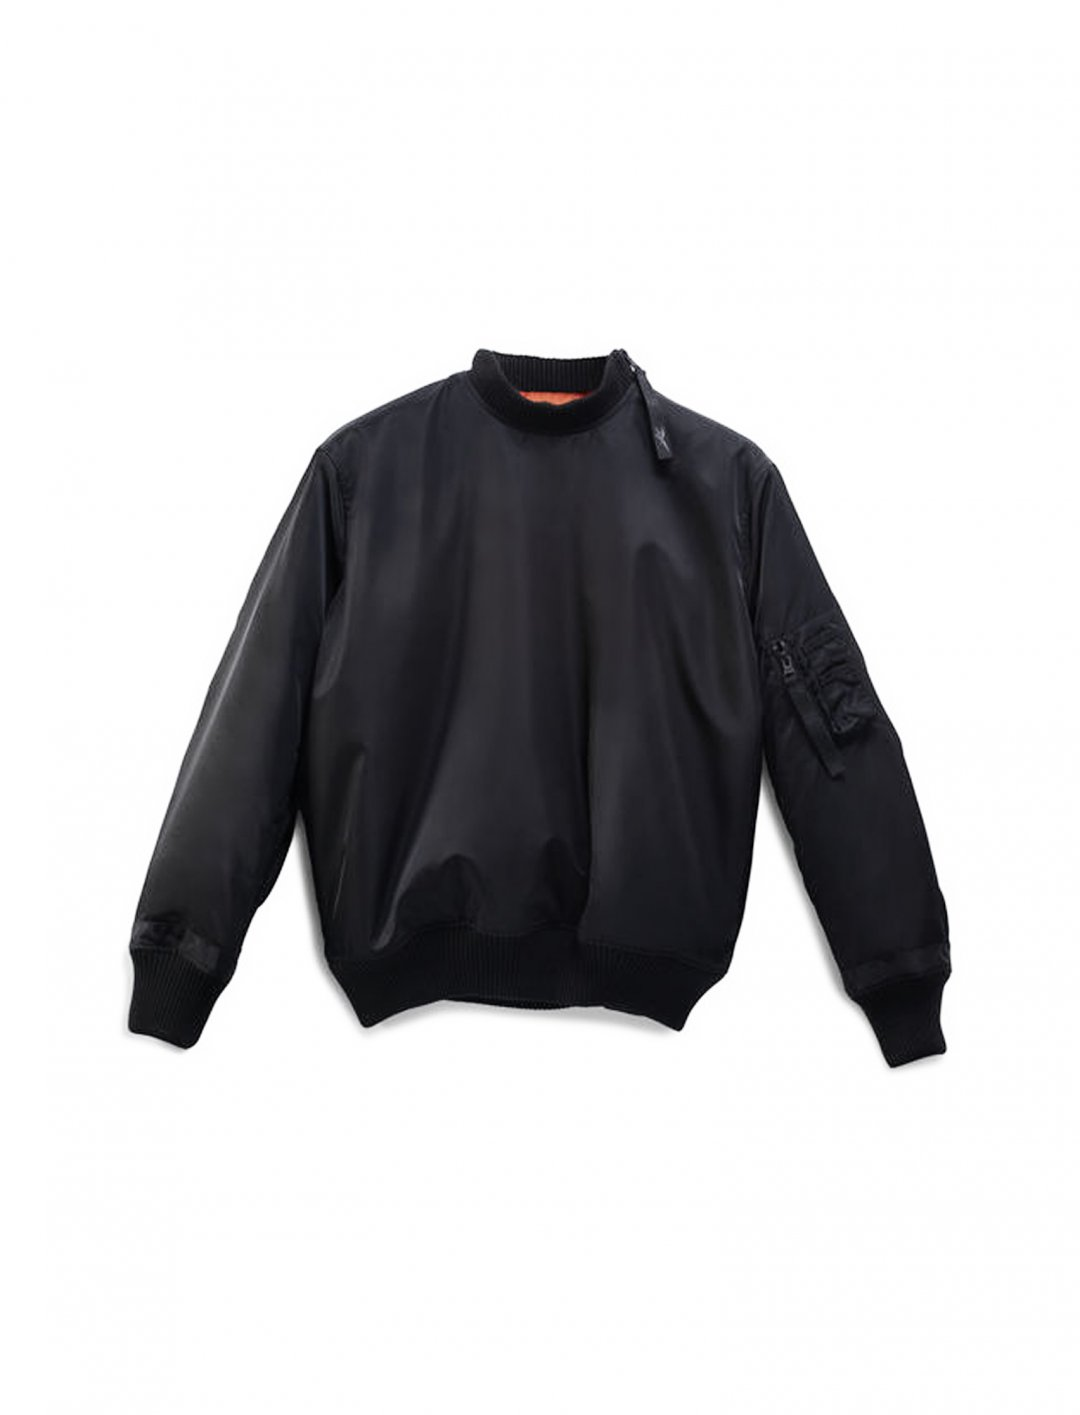 "Pullover Bomber {""id"":5,""product_section_id"":1,""name"":""Clothing"",""order"":5} Reebok x Victoria Beckham"